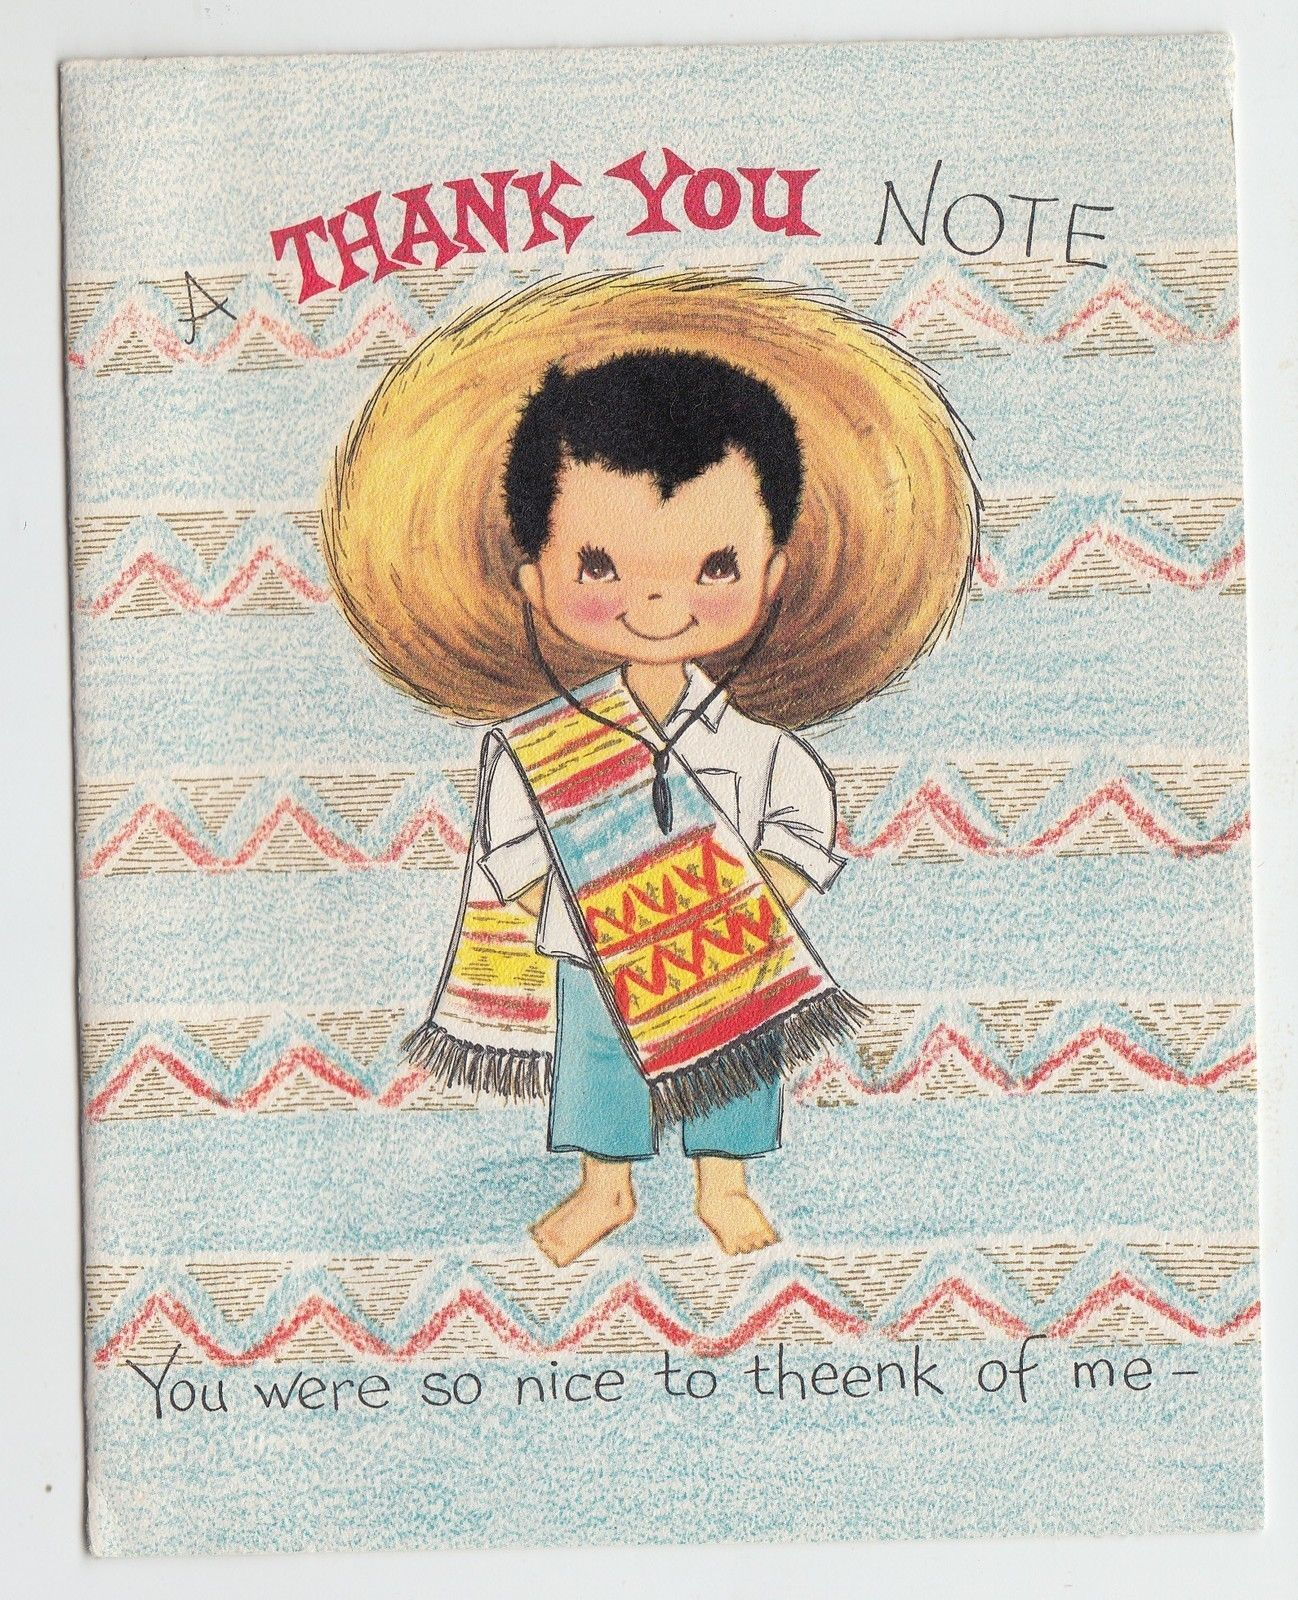 Vintage Mexican Boy with Fuzzy Hair Thank You Greeting Card   eBay